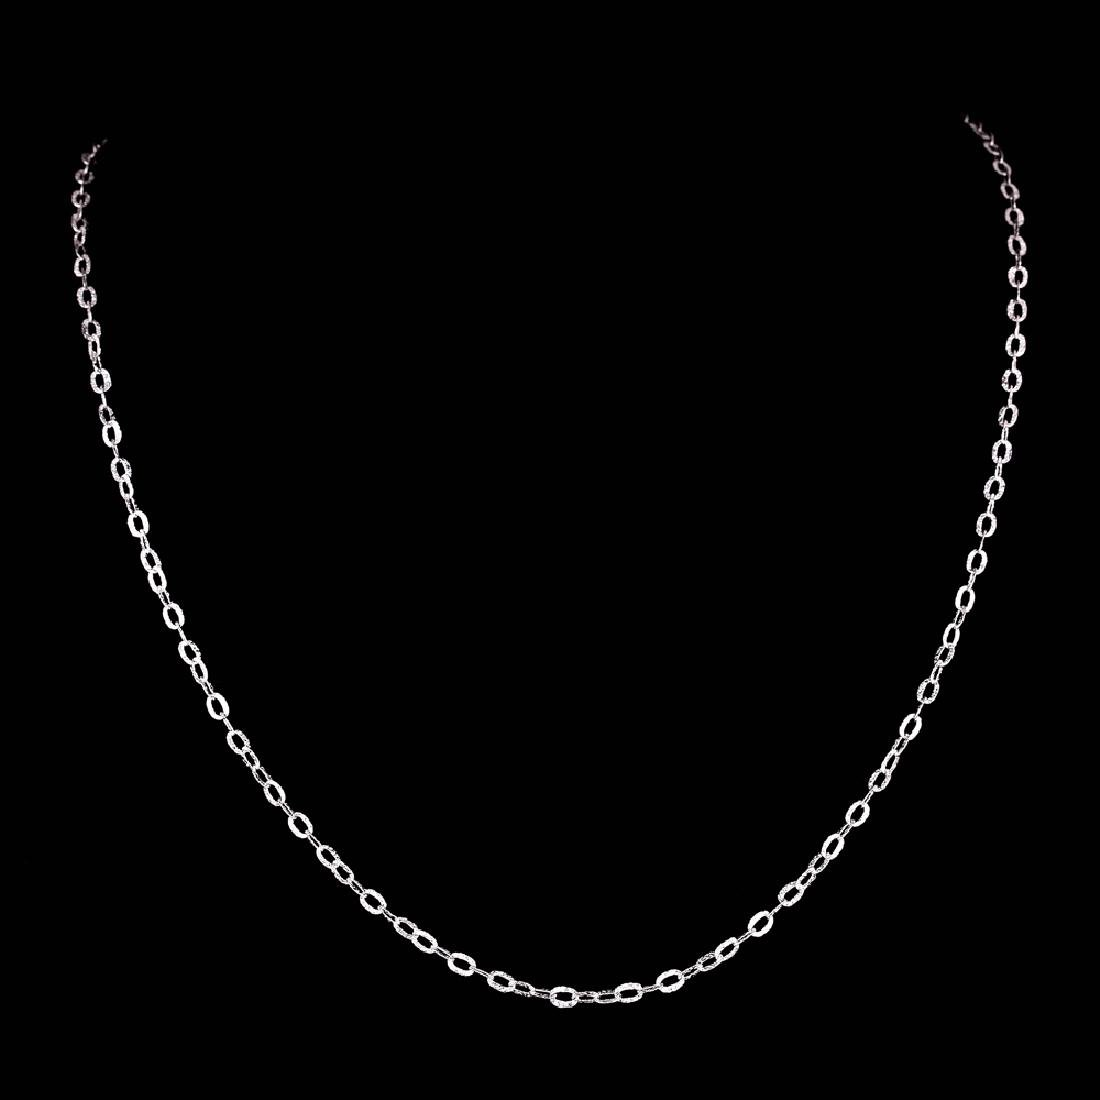 *Fine Jewelry 14 KT White Gold, 2.0GR, 18'' Corrugated